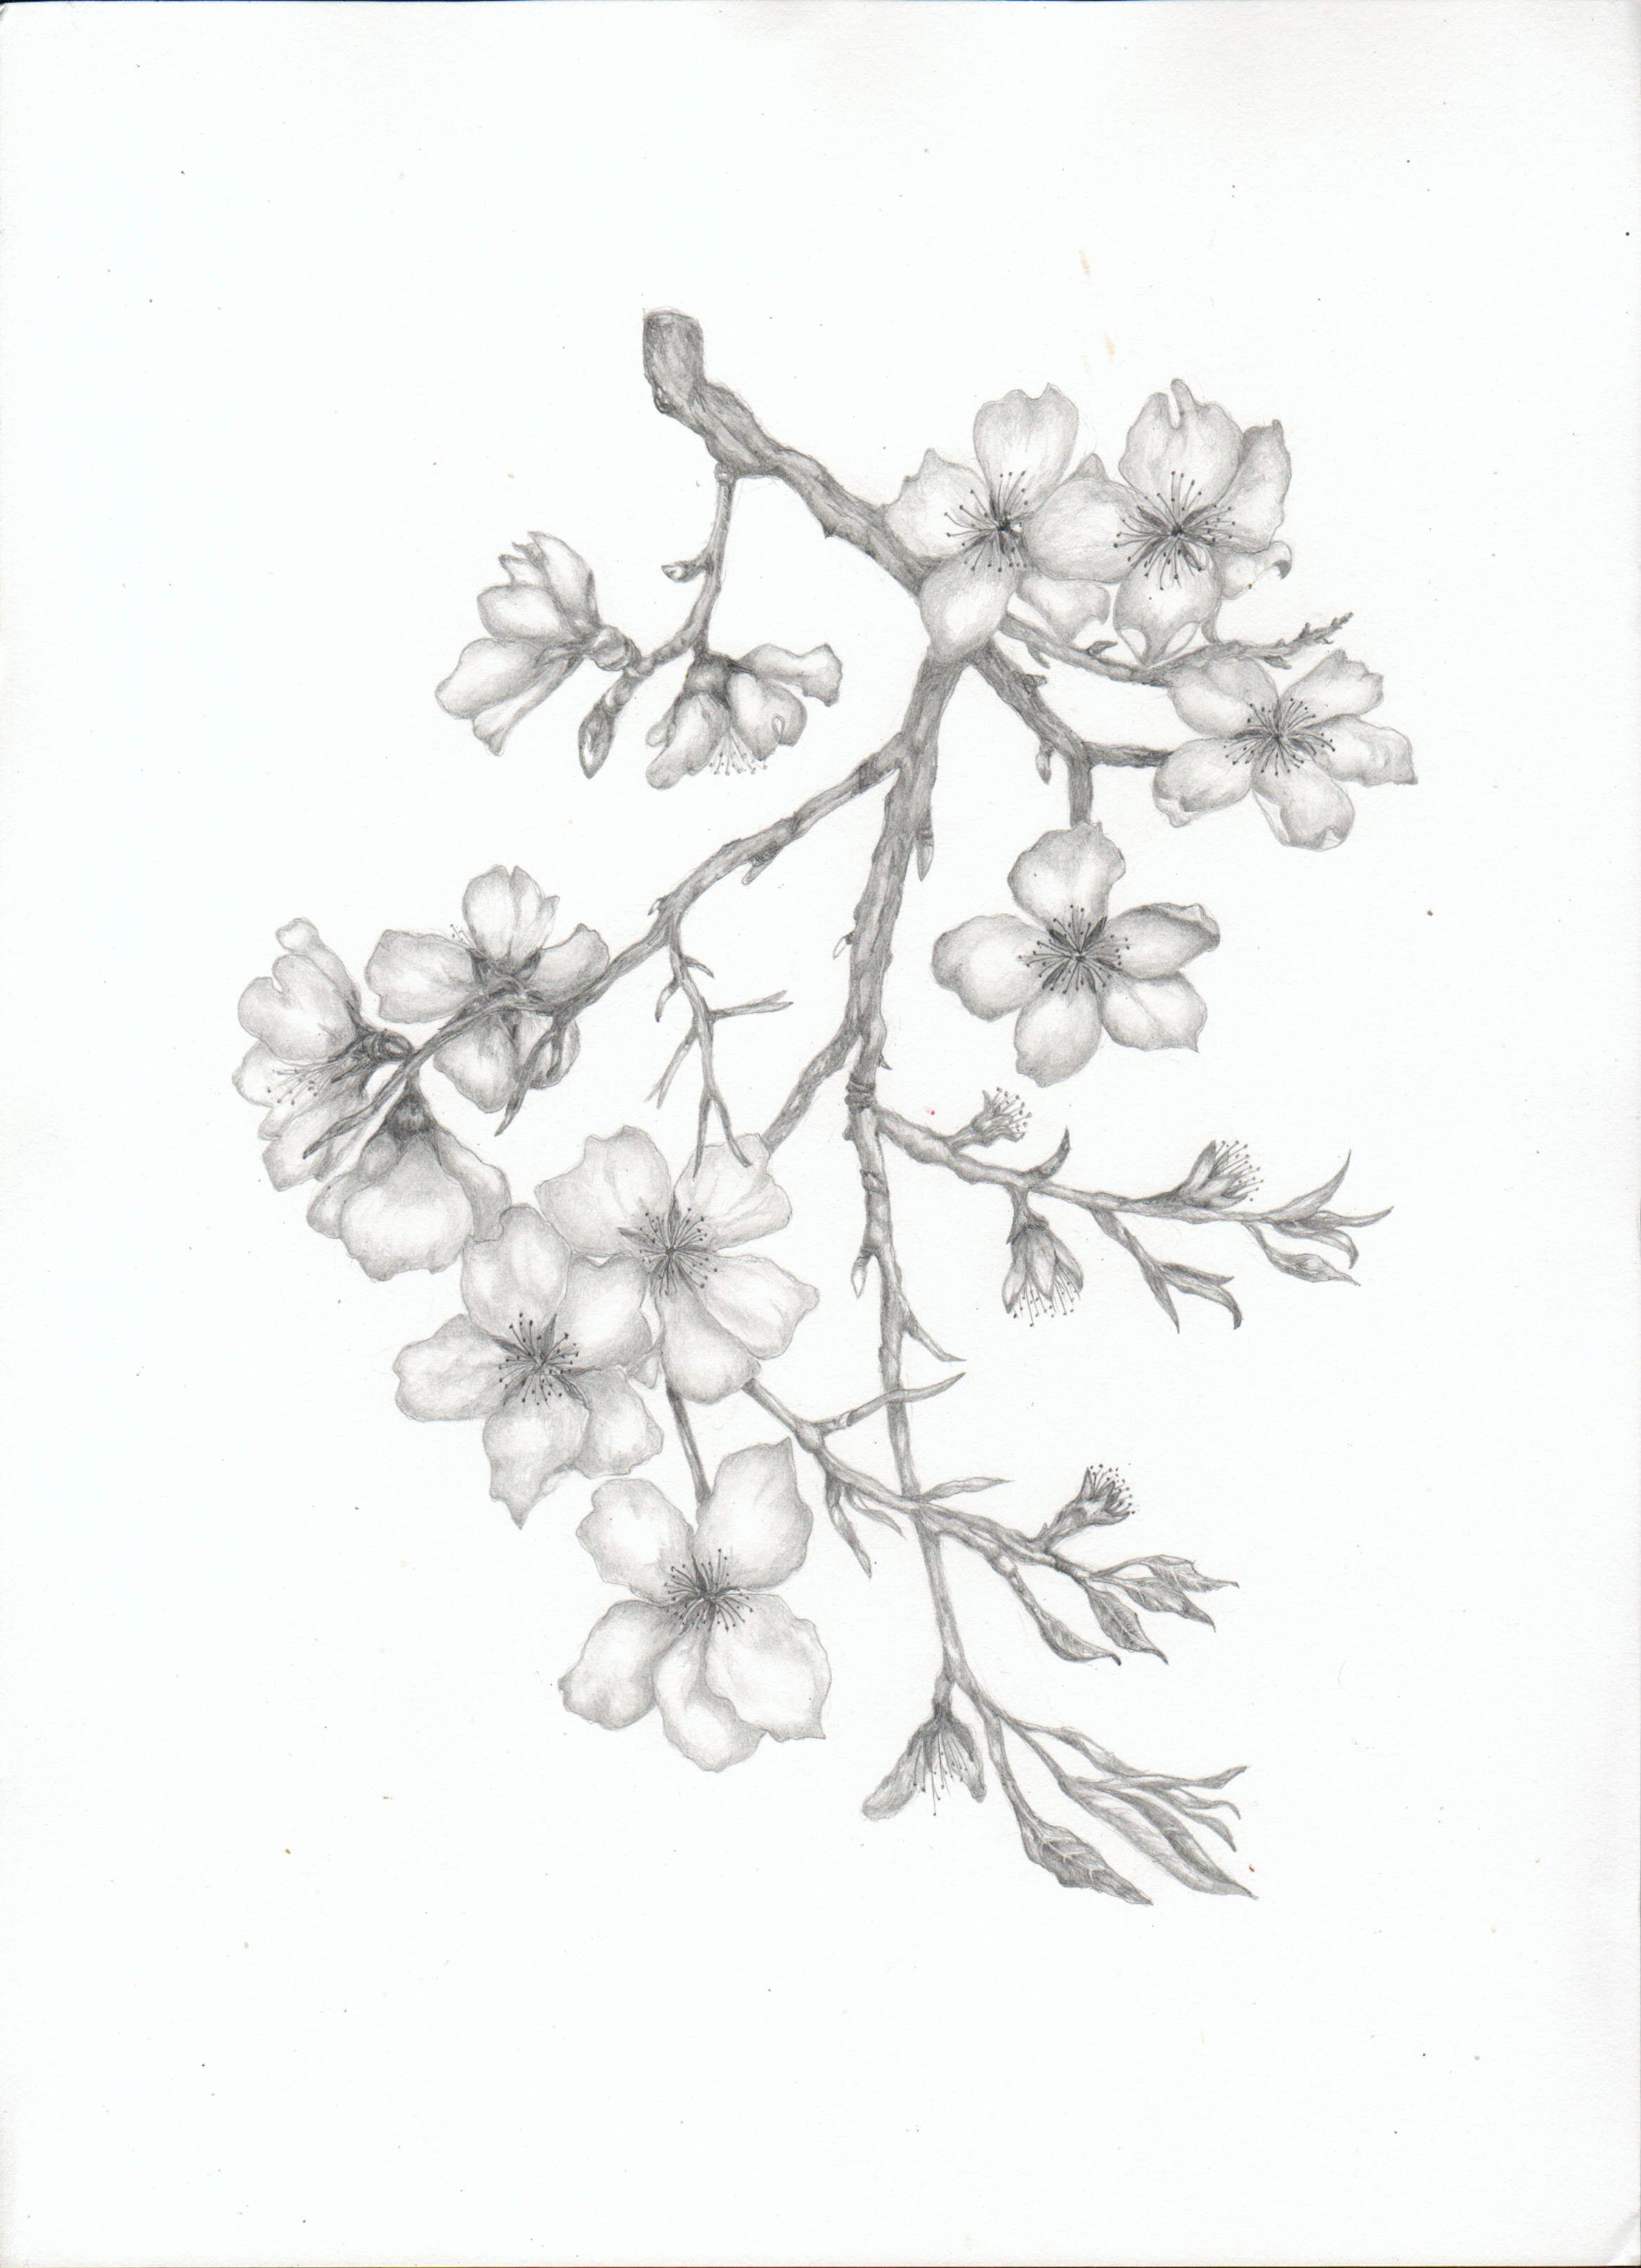 Almond Blossom Branch Cherry Blossom Drawing Flower Drawing Tree Drawings Pencil